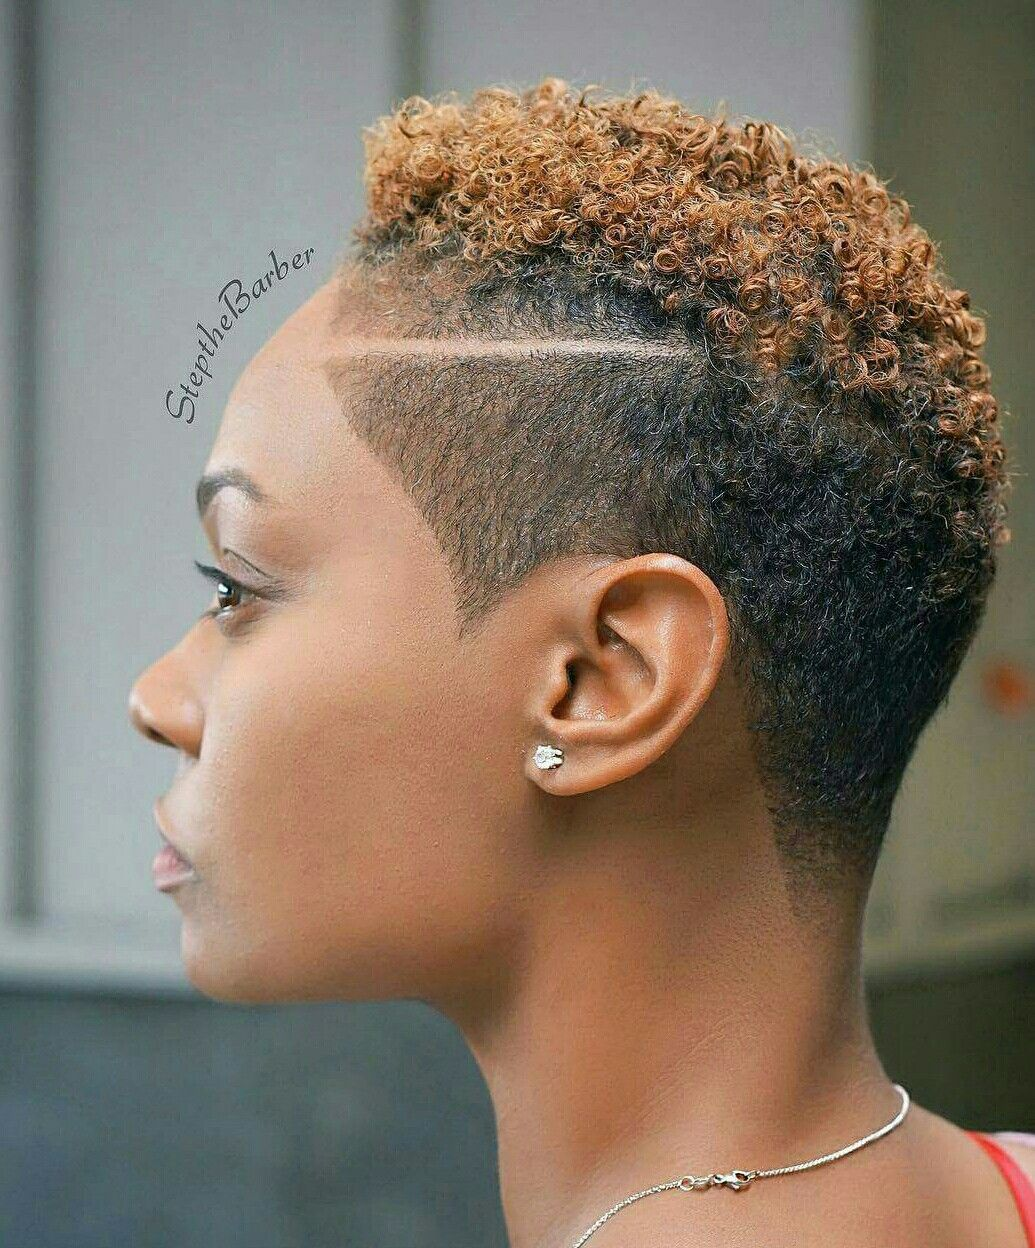 Coiffure Afro Paris 12 Haircut Cooler Heads En 2018 Pinterest Coiffure